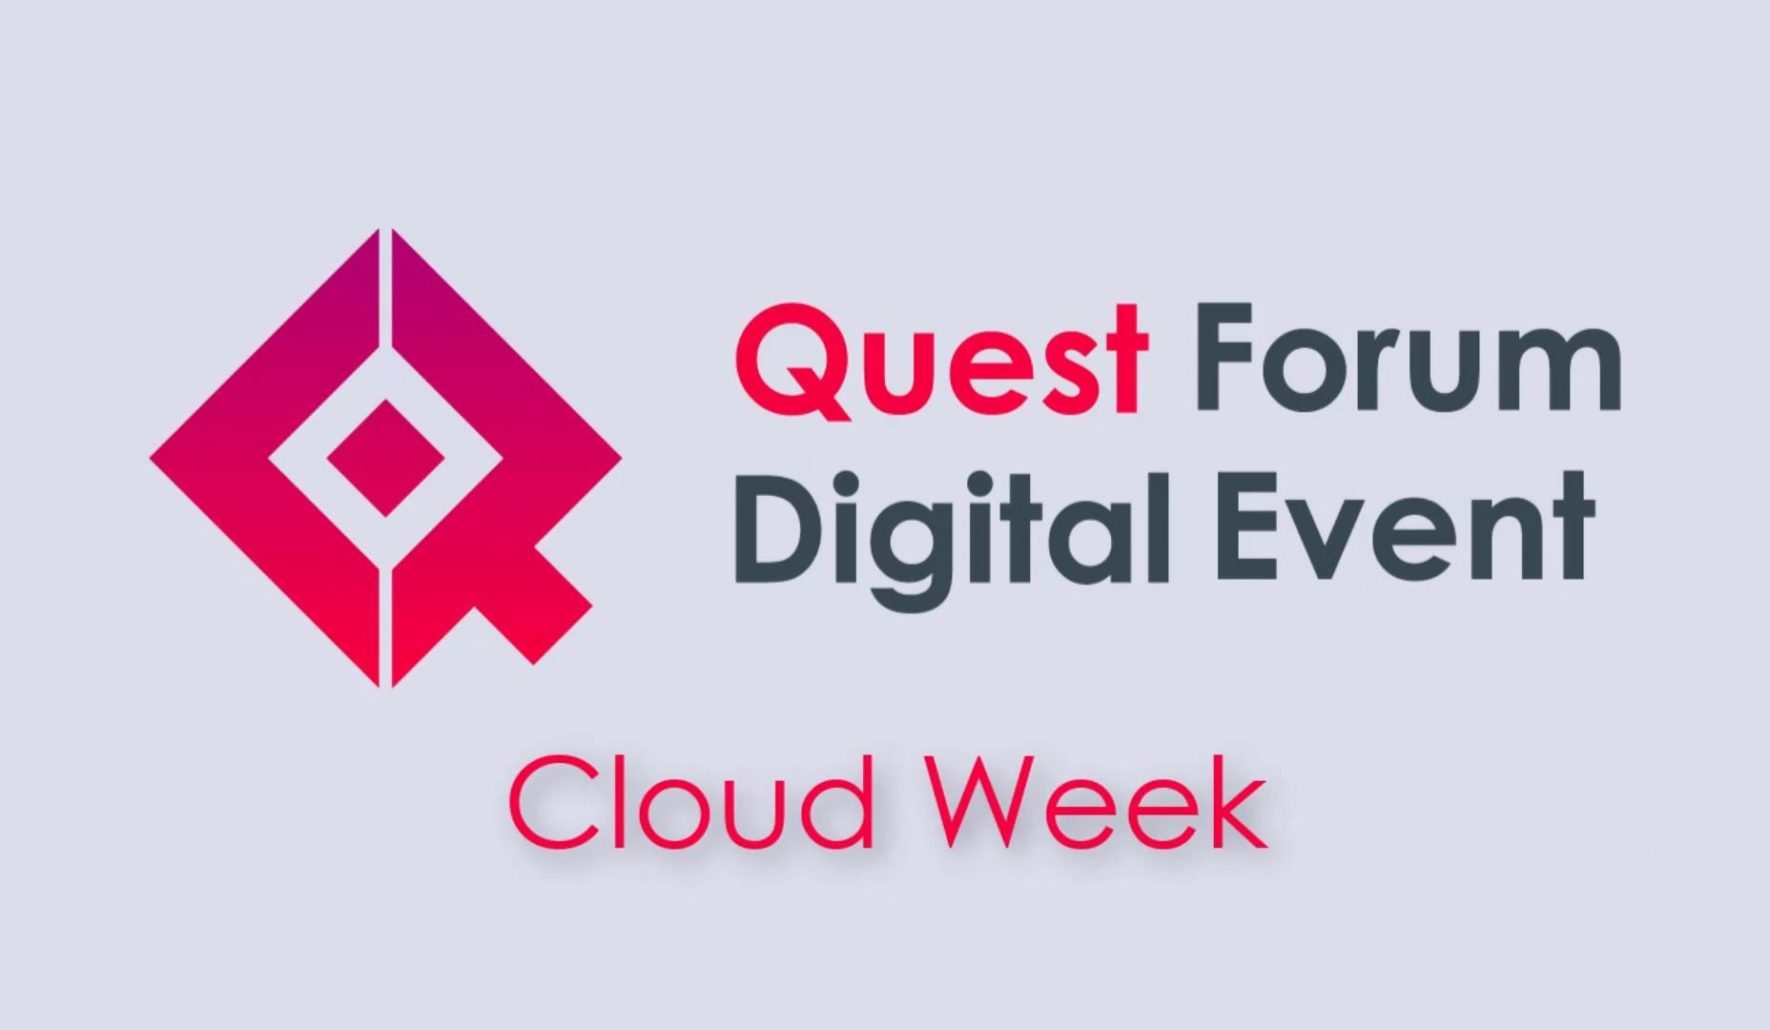 QFDE Cloud Week